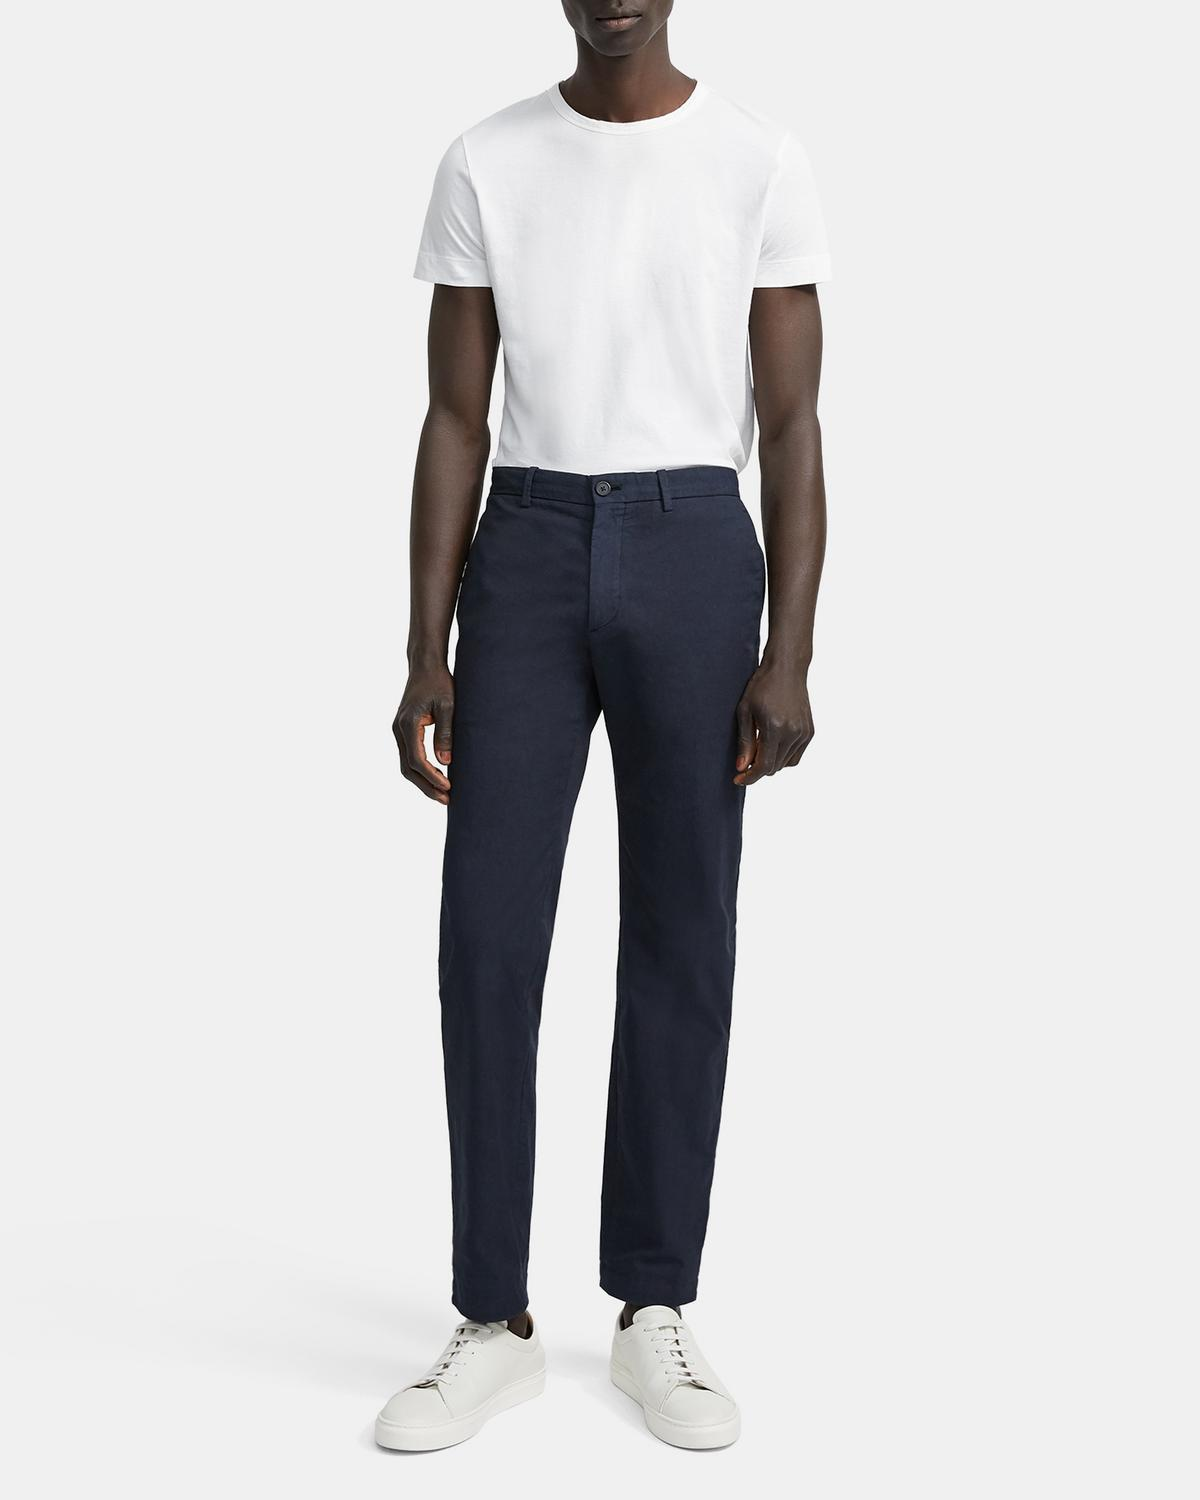 Classic-Fit Pant in Garment Dyed Cotton